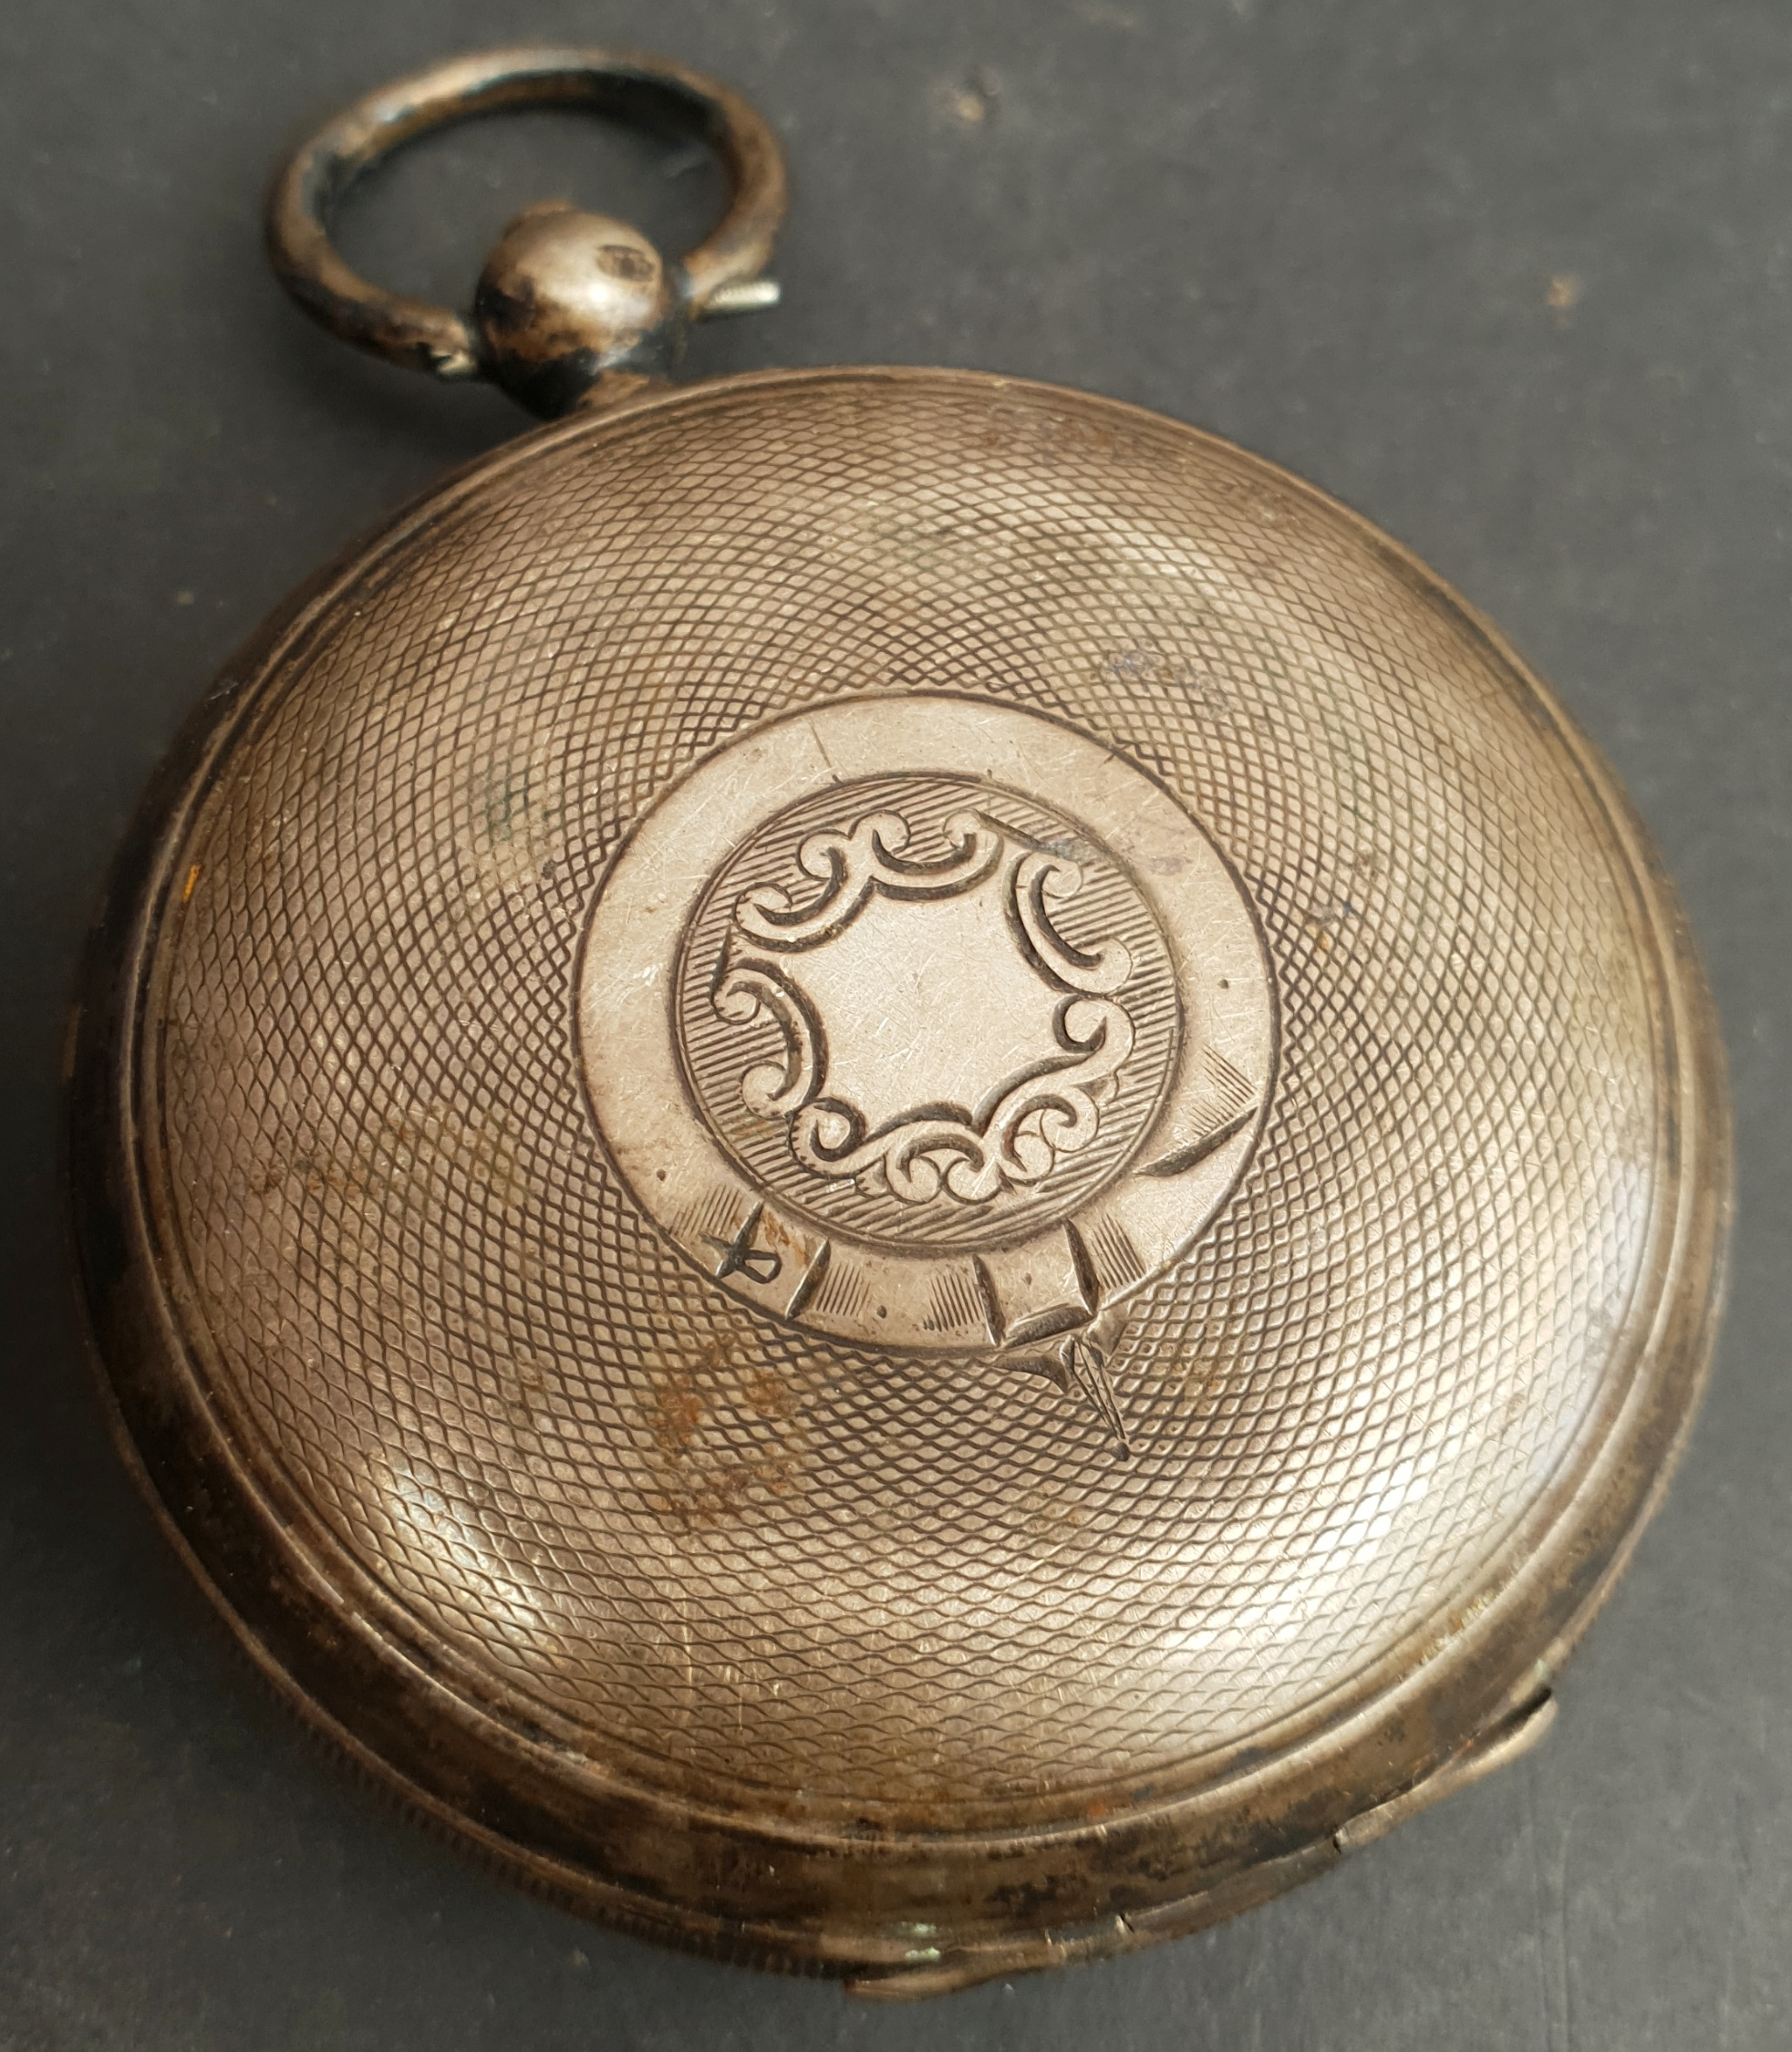 Antiques Silver Cased English Lever Pocket Watch - Image 4 of 4